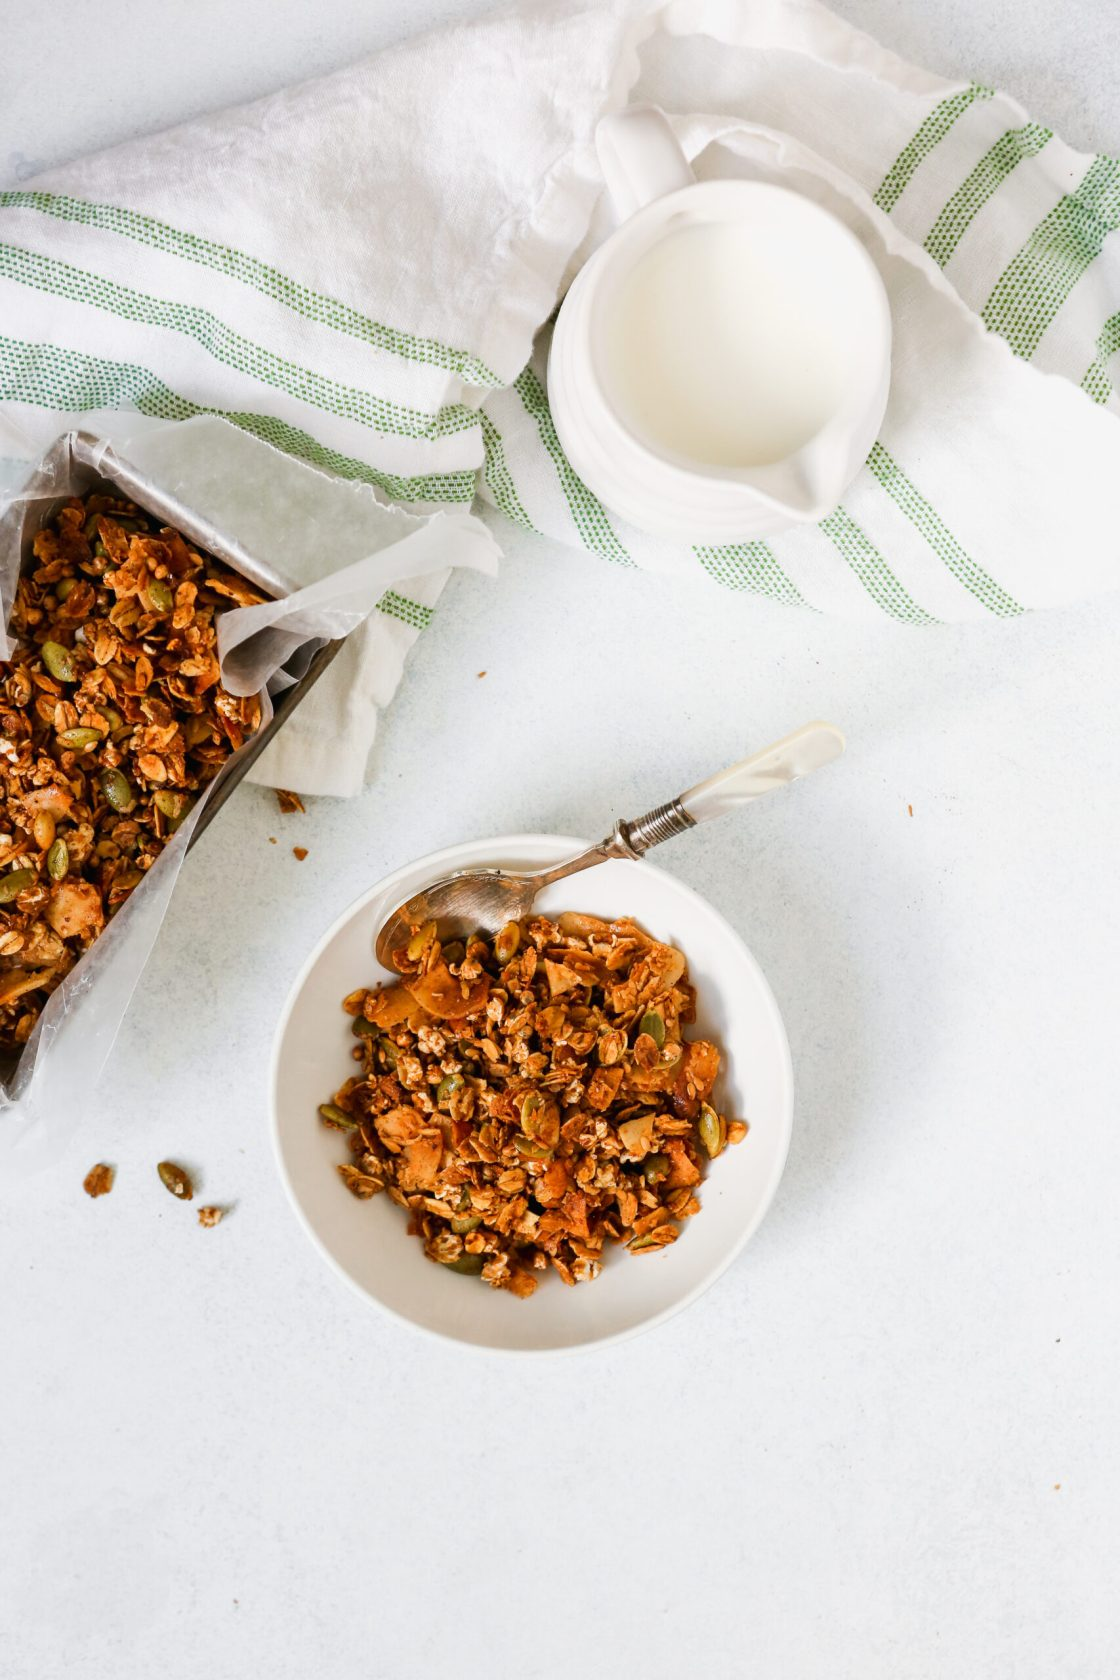 Homemade healthy granola recipe in a white bowl and in a metal tin